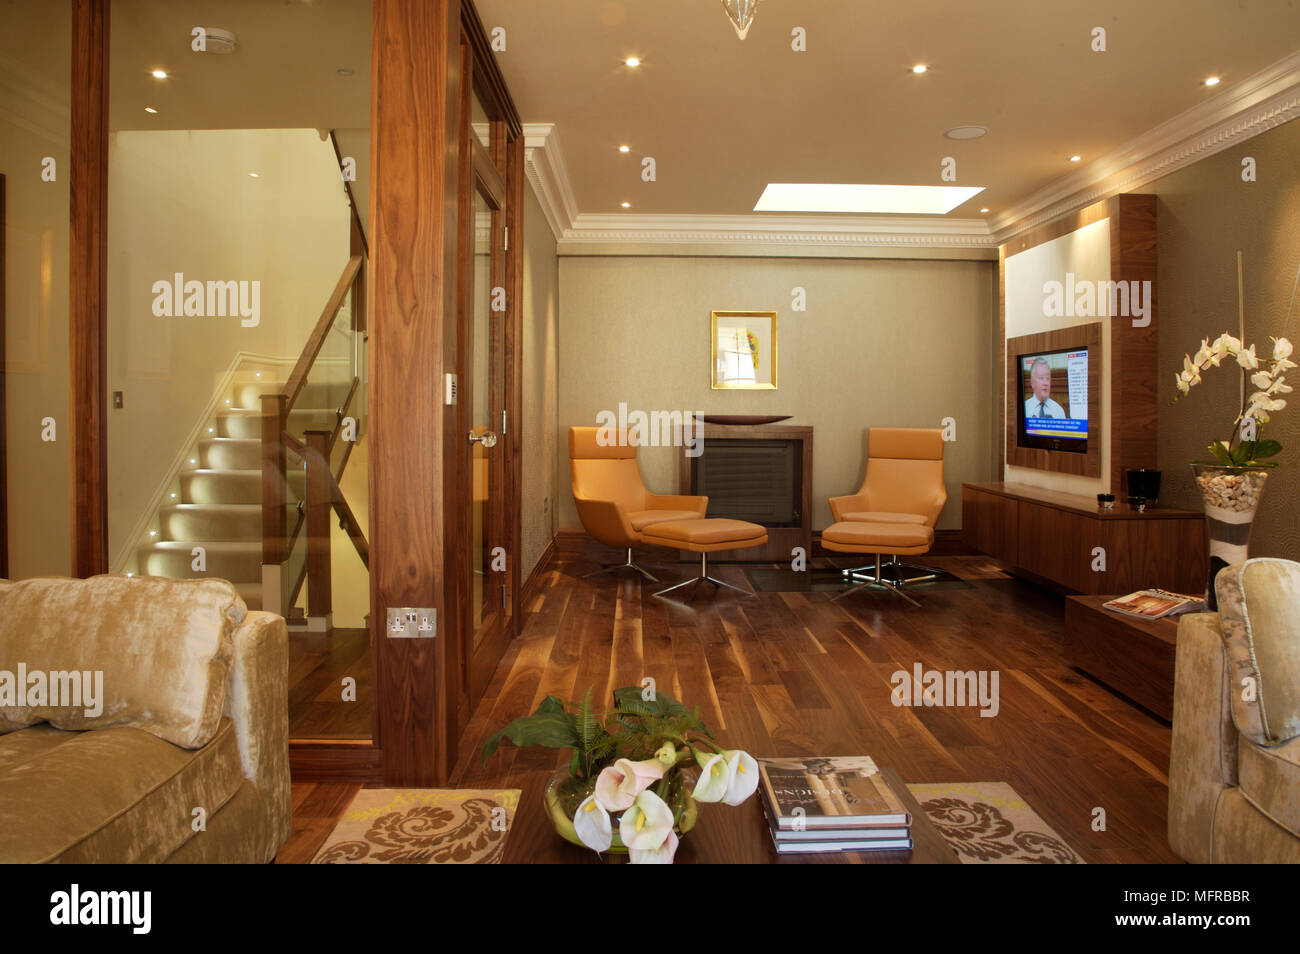 Sitting Room With Wood Floor And Lounge Chairs In Front Of